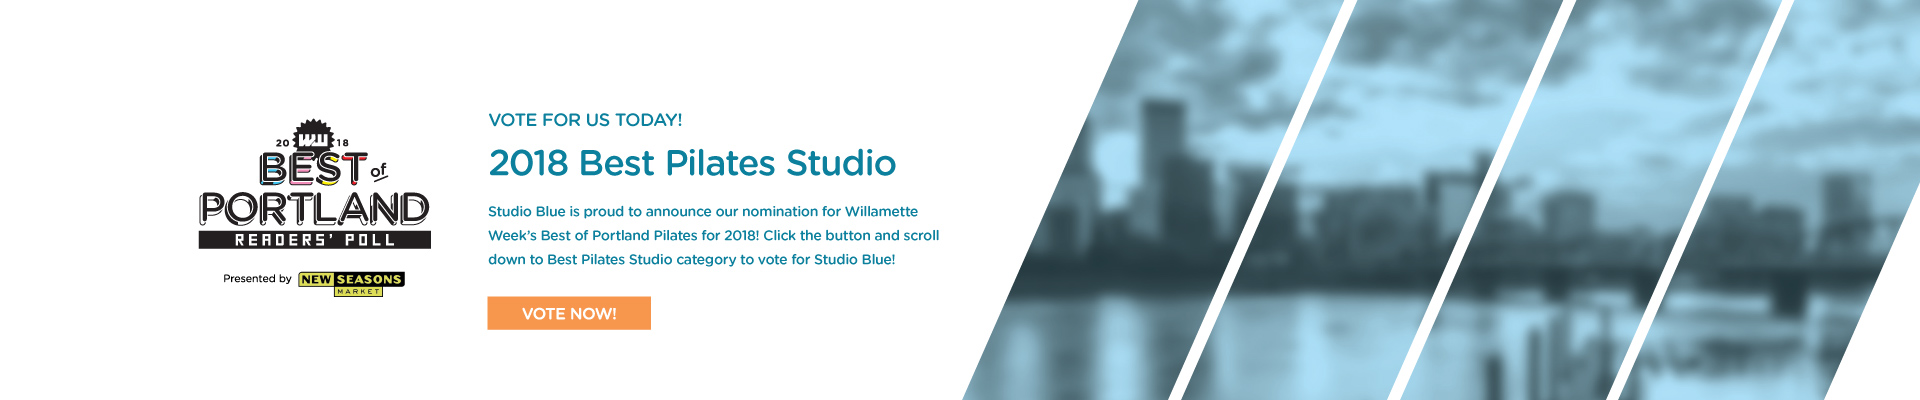 Vote for Studio Blue in the Willamette Week Best of Portland Contest!